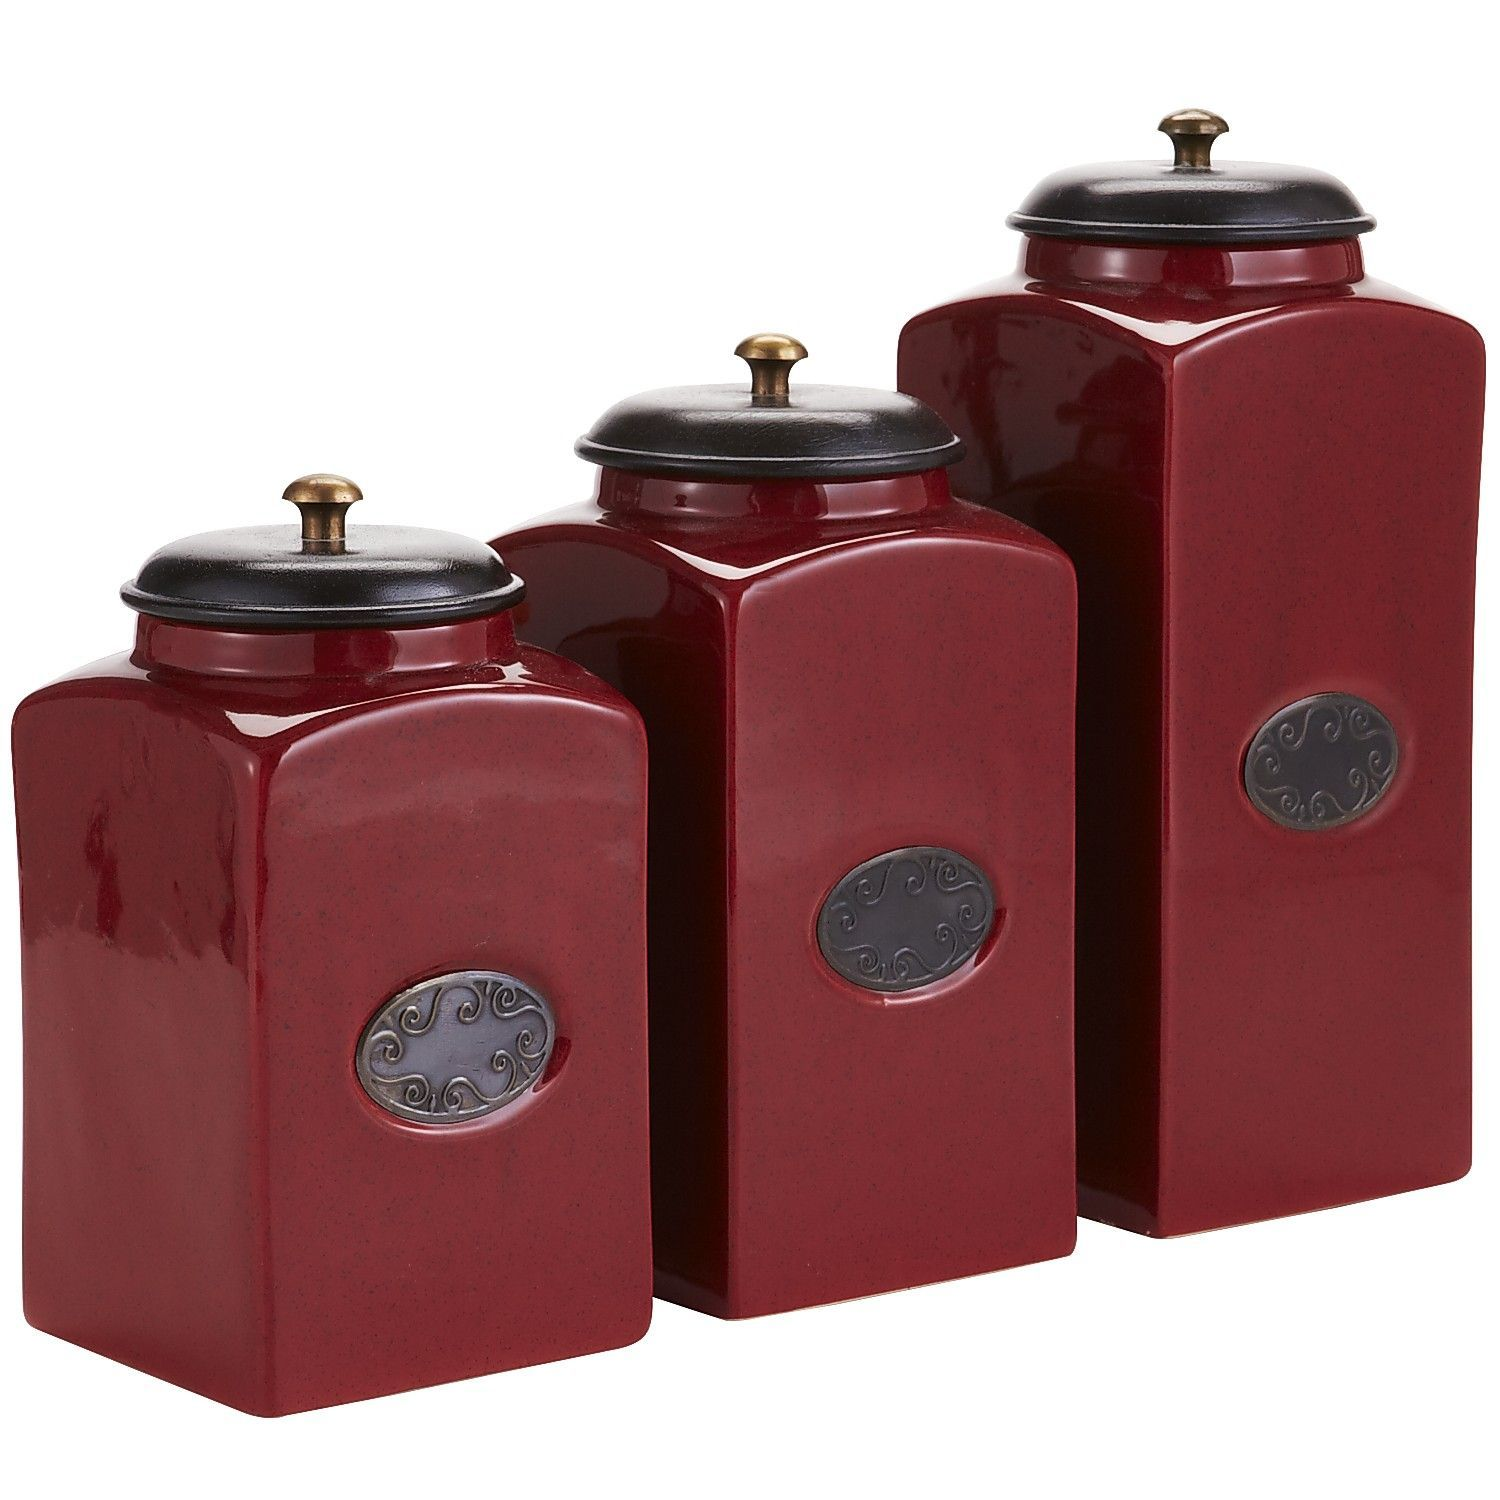 Chadwick kitchen canisters red kitchenspirations pinterest kitchen canisters western - Western canisters for kitchen ...